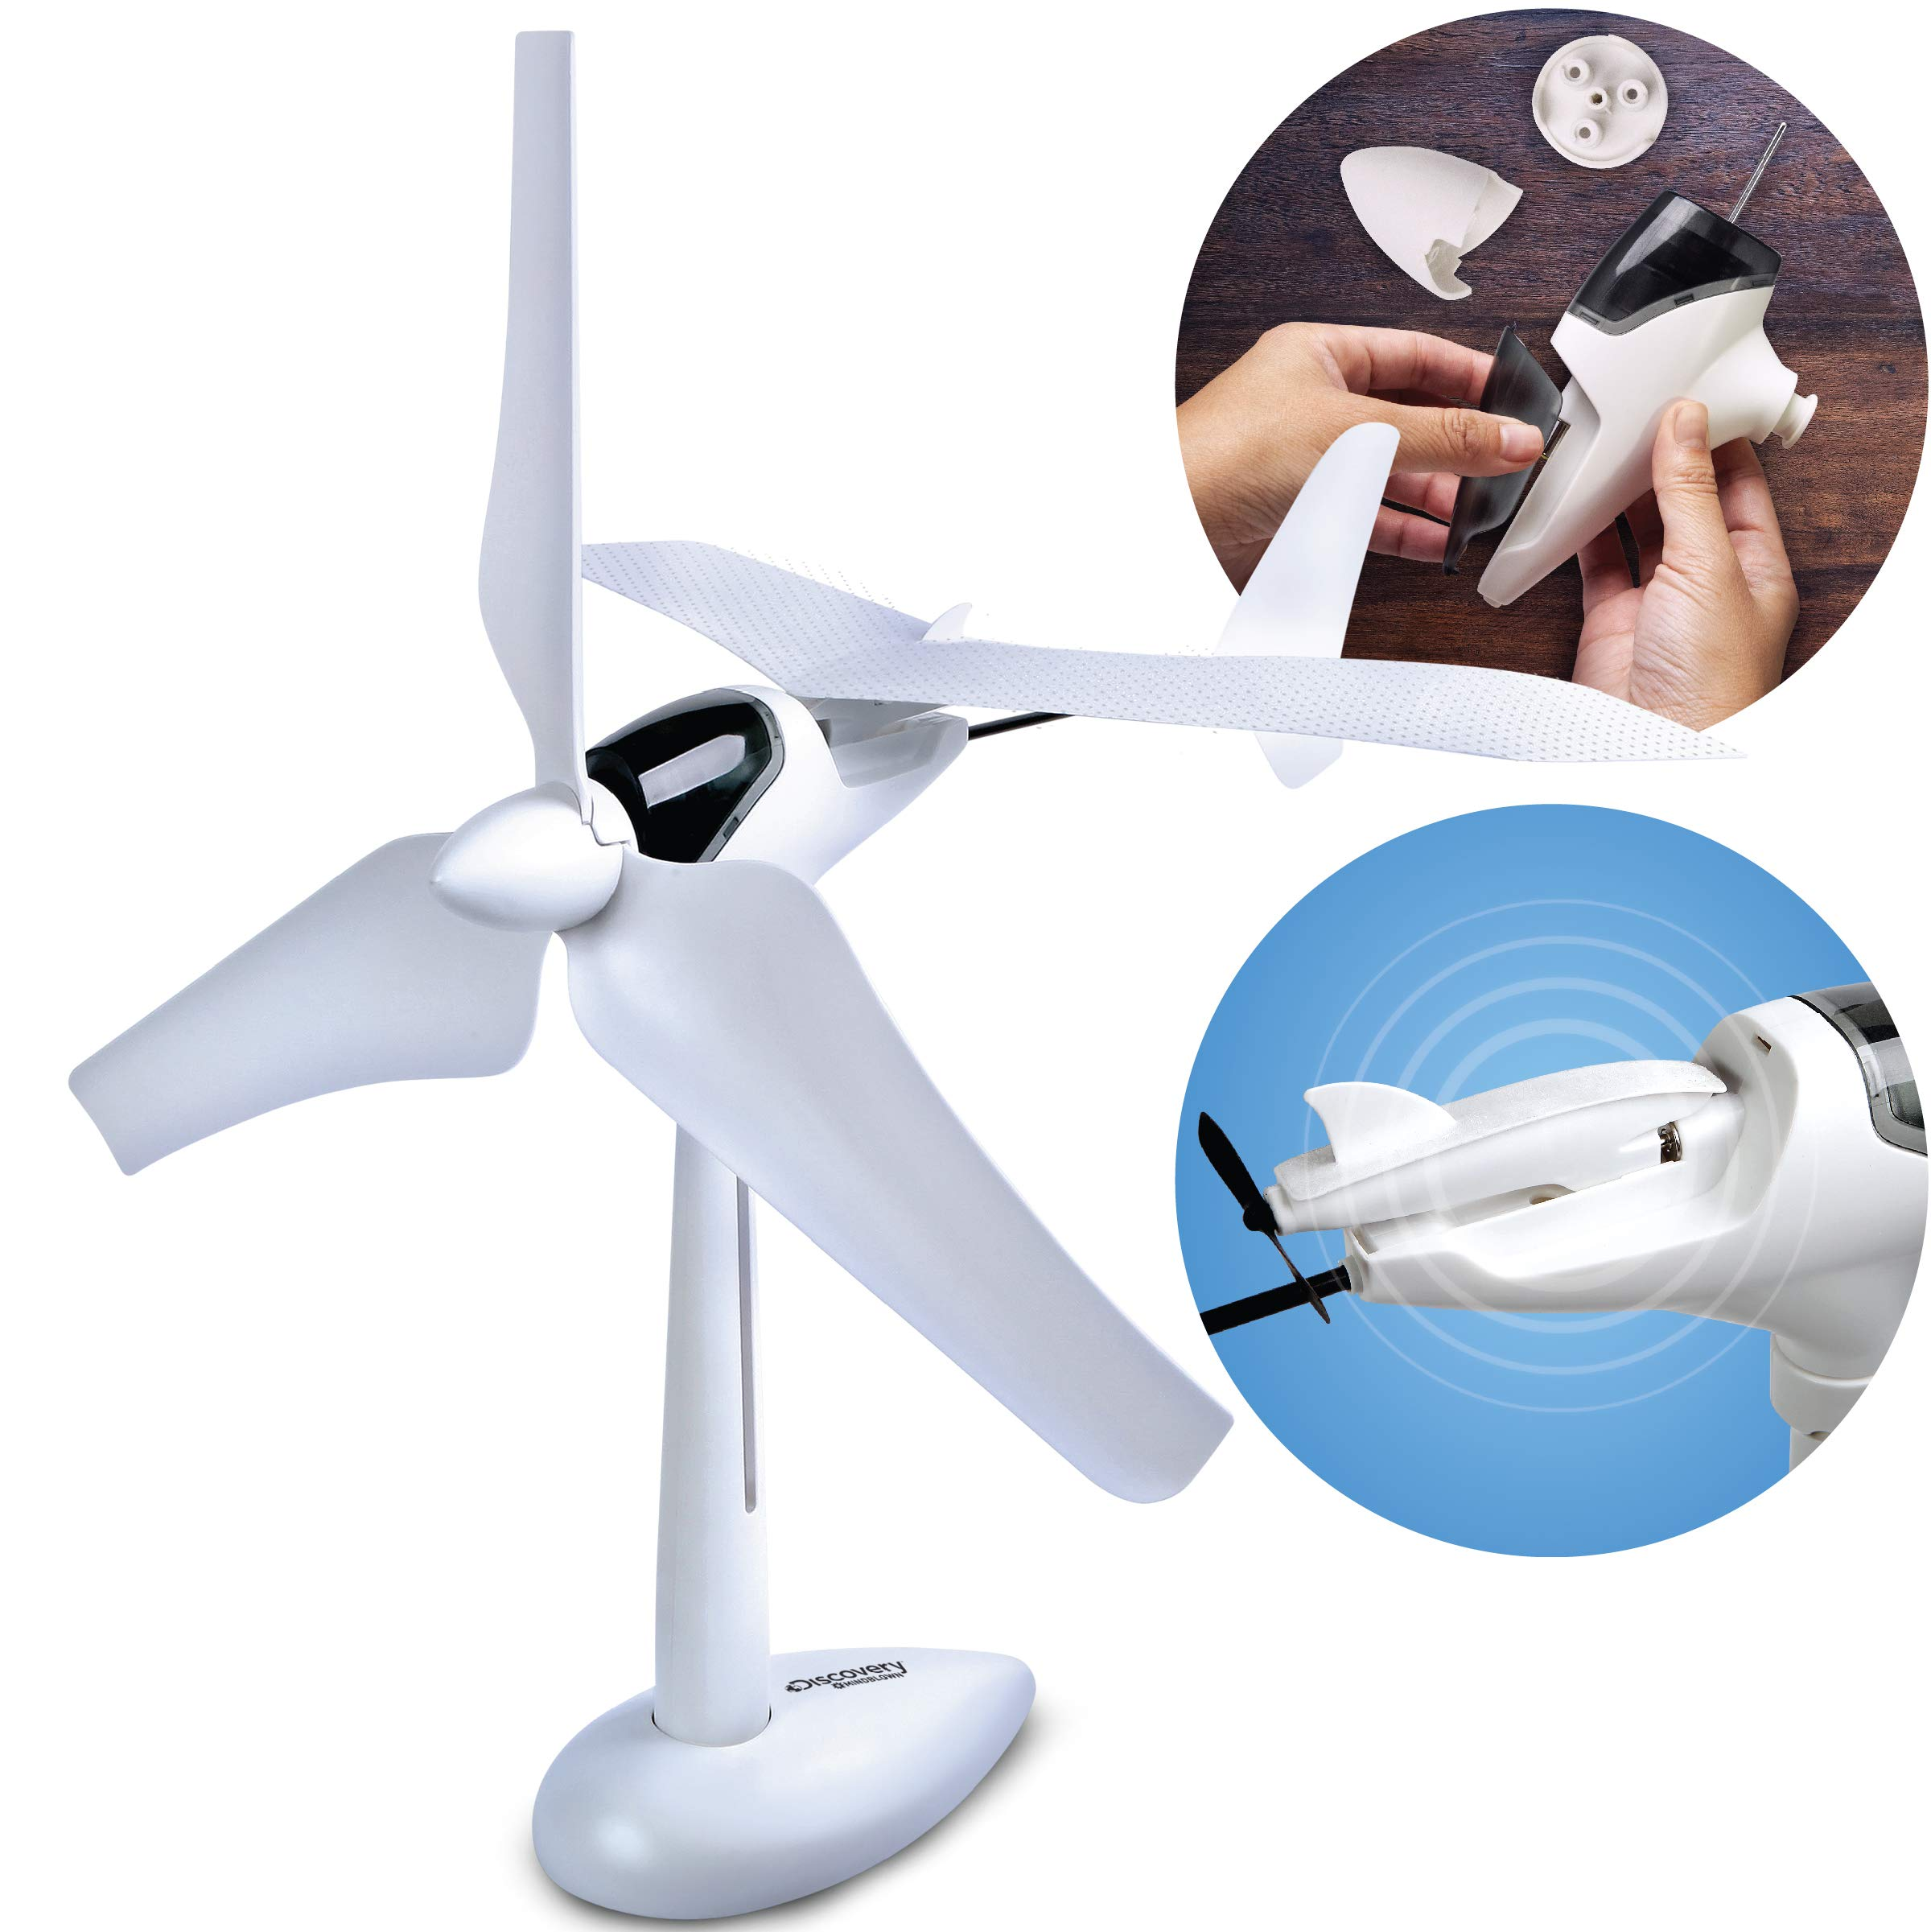 Discovery Kids Mindblown Wind Turbine Glider Kit, STEM Science Experiment for Boys and Girls, Fun Home Engineering Project, Green Energy Powers Soaring Motorized Glider, Battery-Free + LED Lights